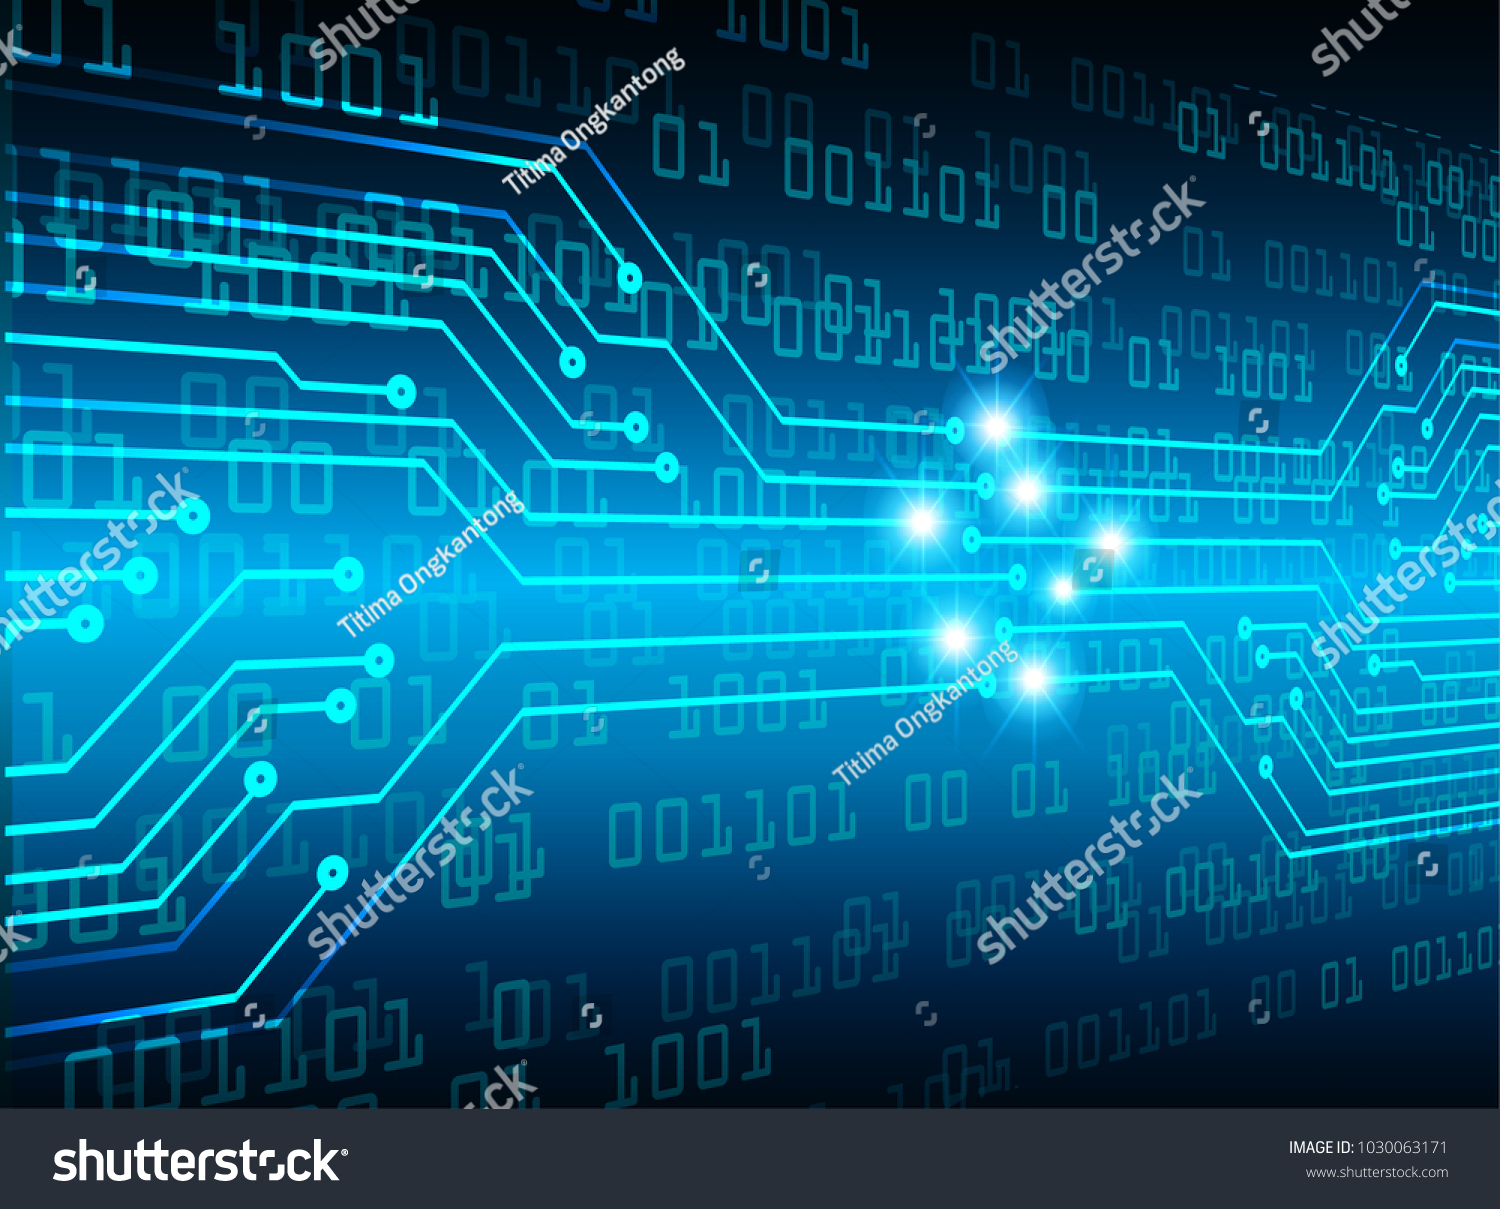 Binary Circuit Board Future Technology Blue Cyber Security Concept Abstact Background With And Code Stock Images Id 1030063171